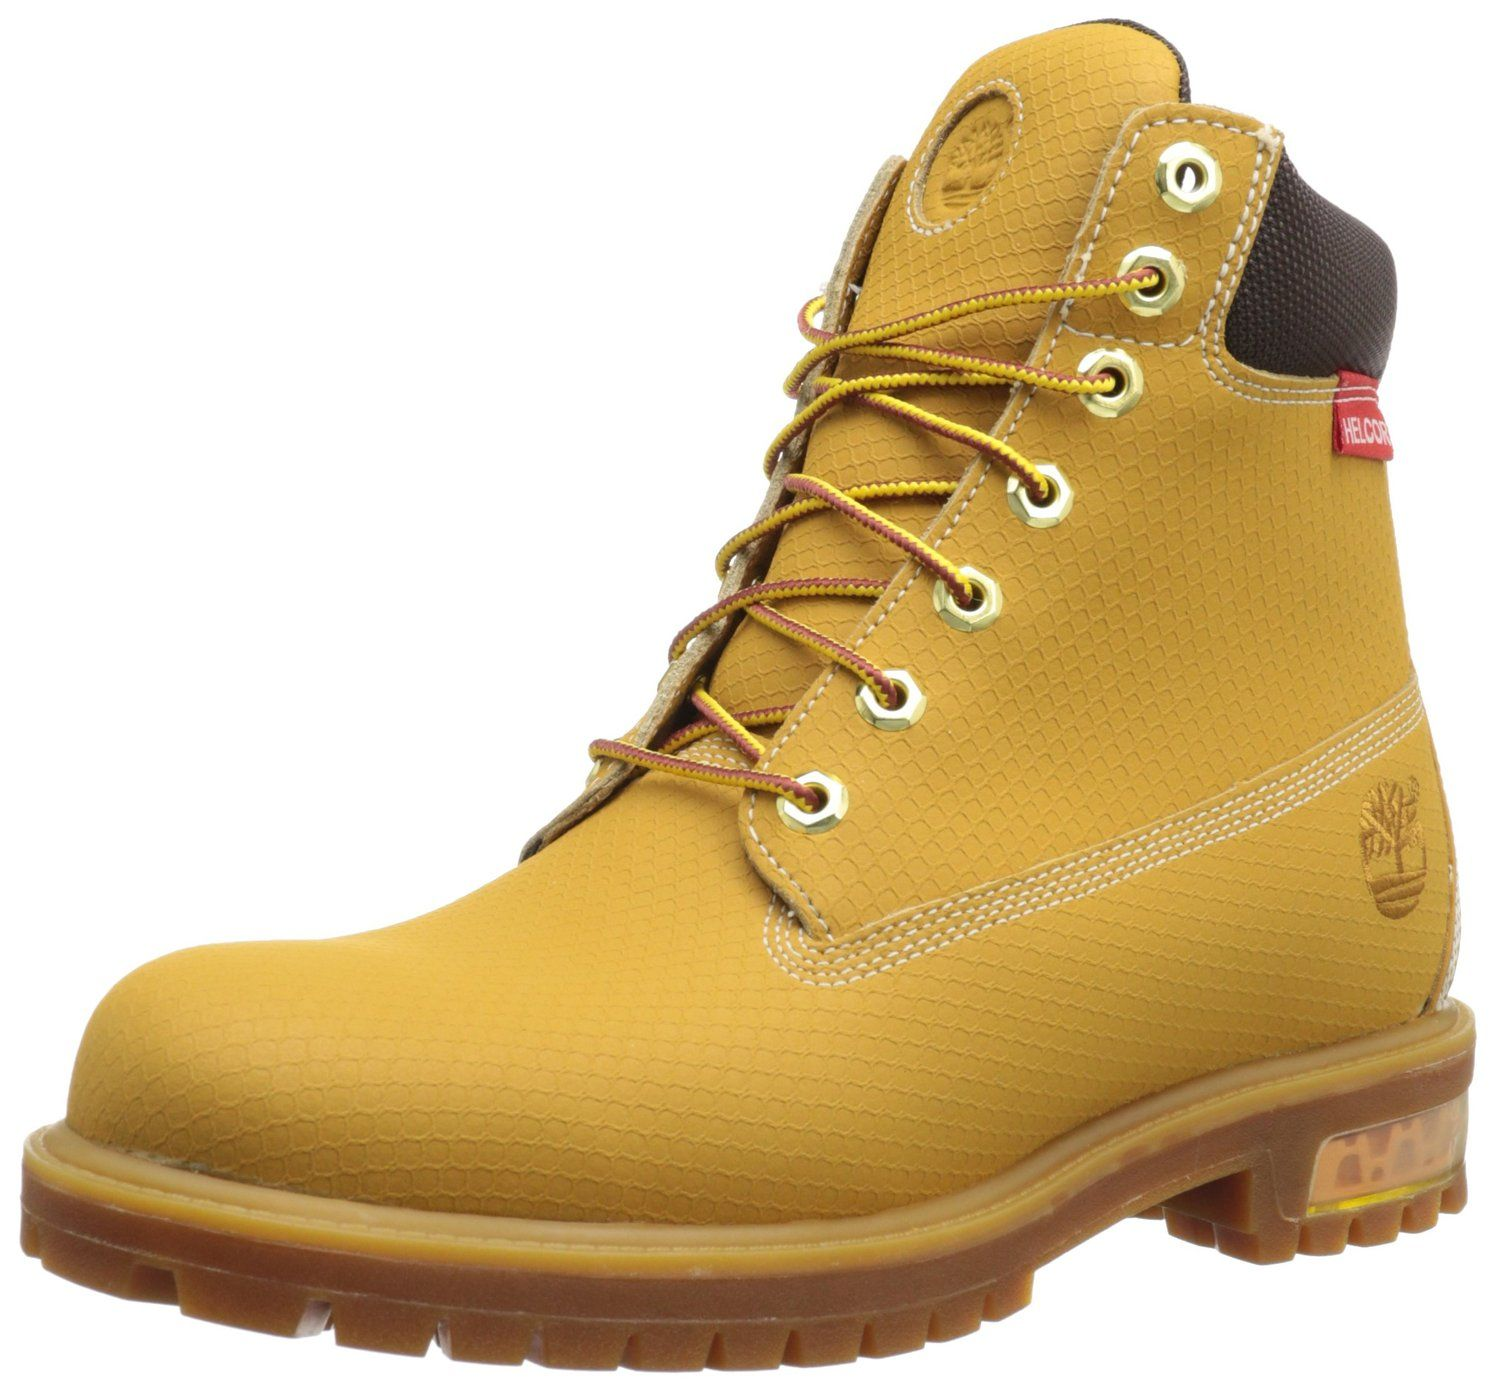 Timberland Men's 6' Premium Helcor Boot >>> Can't believe it's available